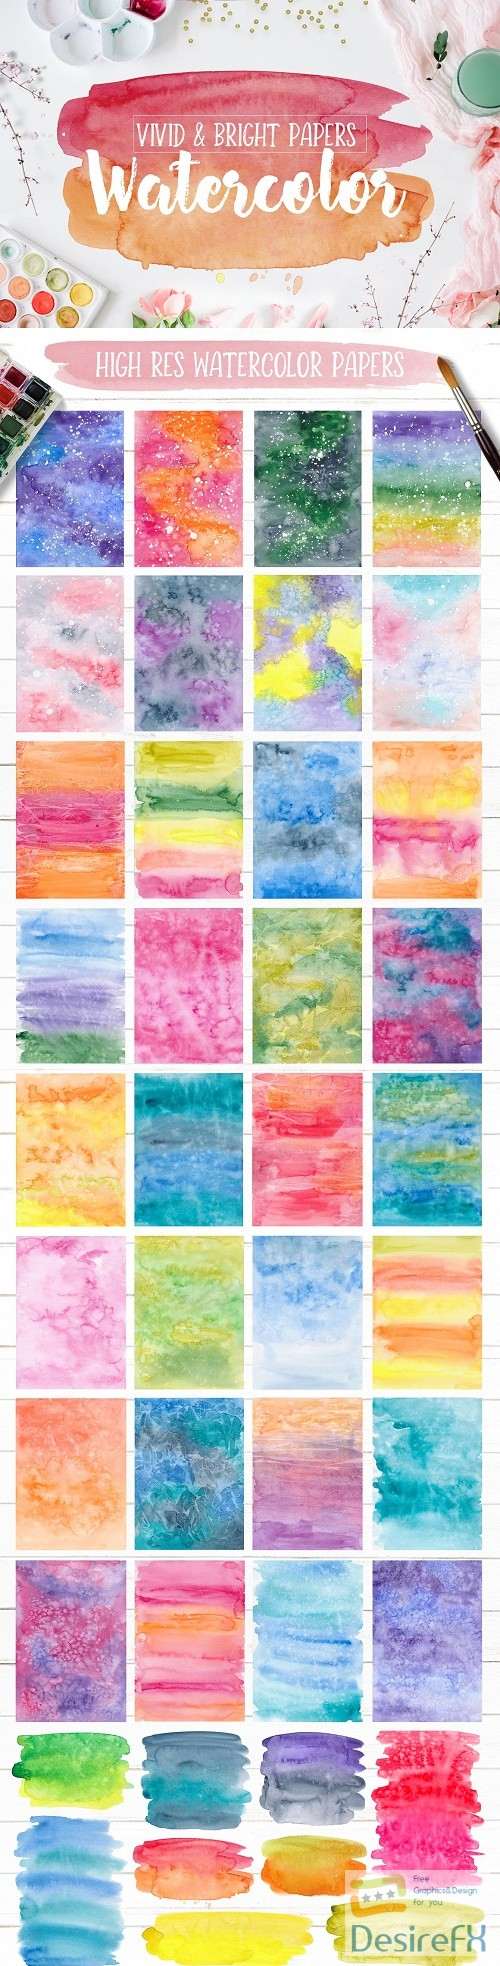 stock-images - Vivid & Bright Watercolor Textures - 3006263